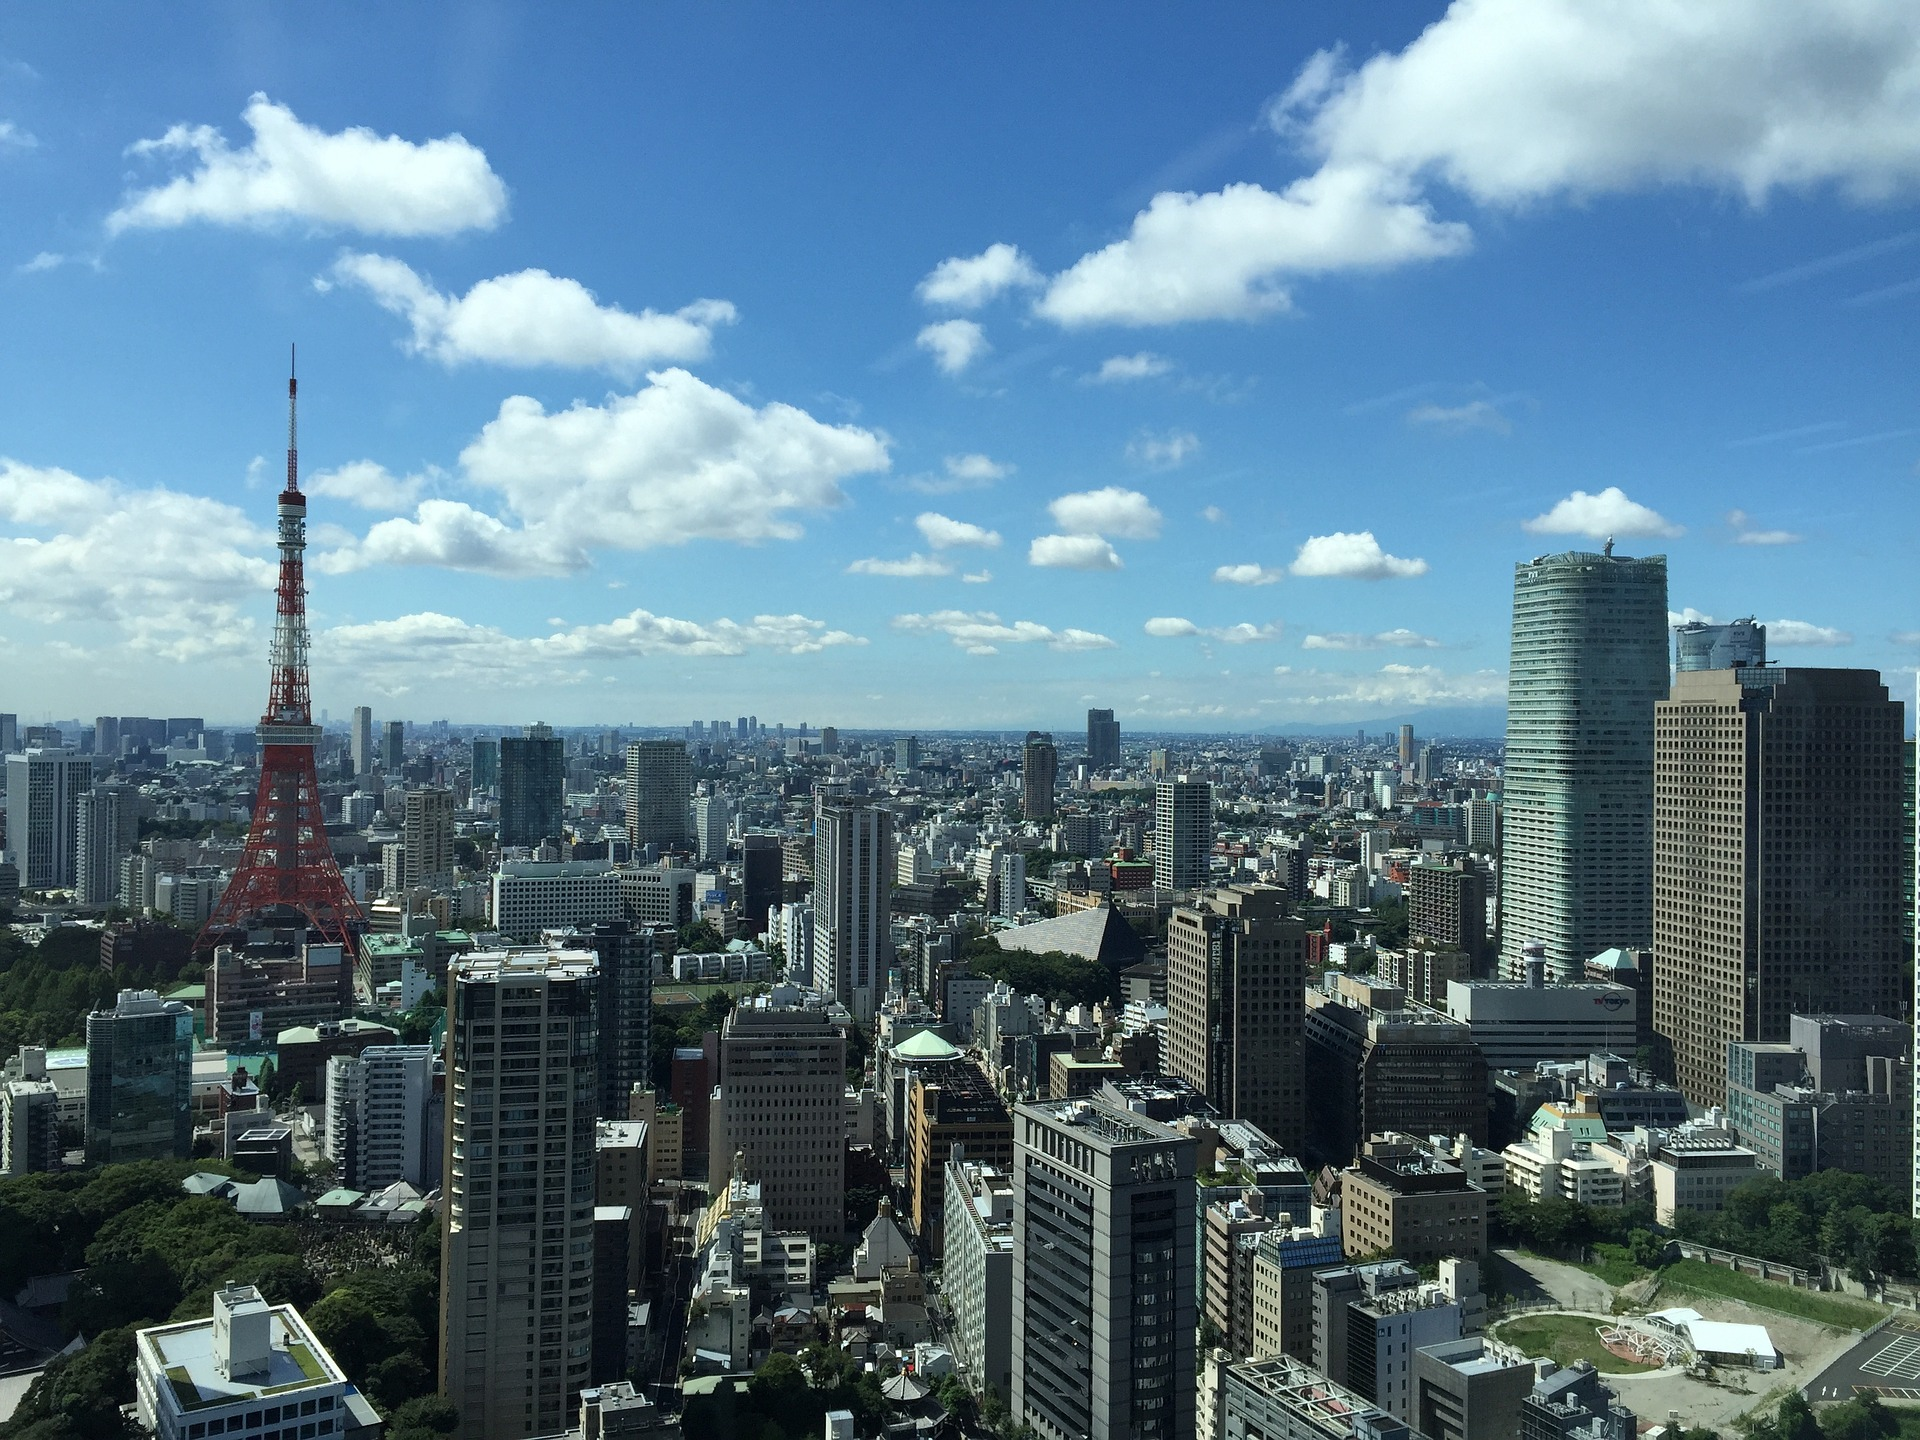 Tokyo, Japan, with Tokyo Tower in background